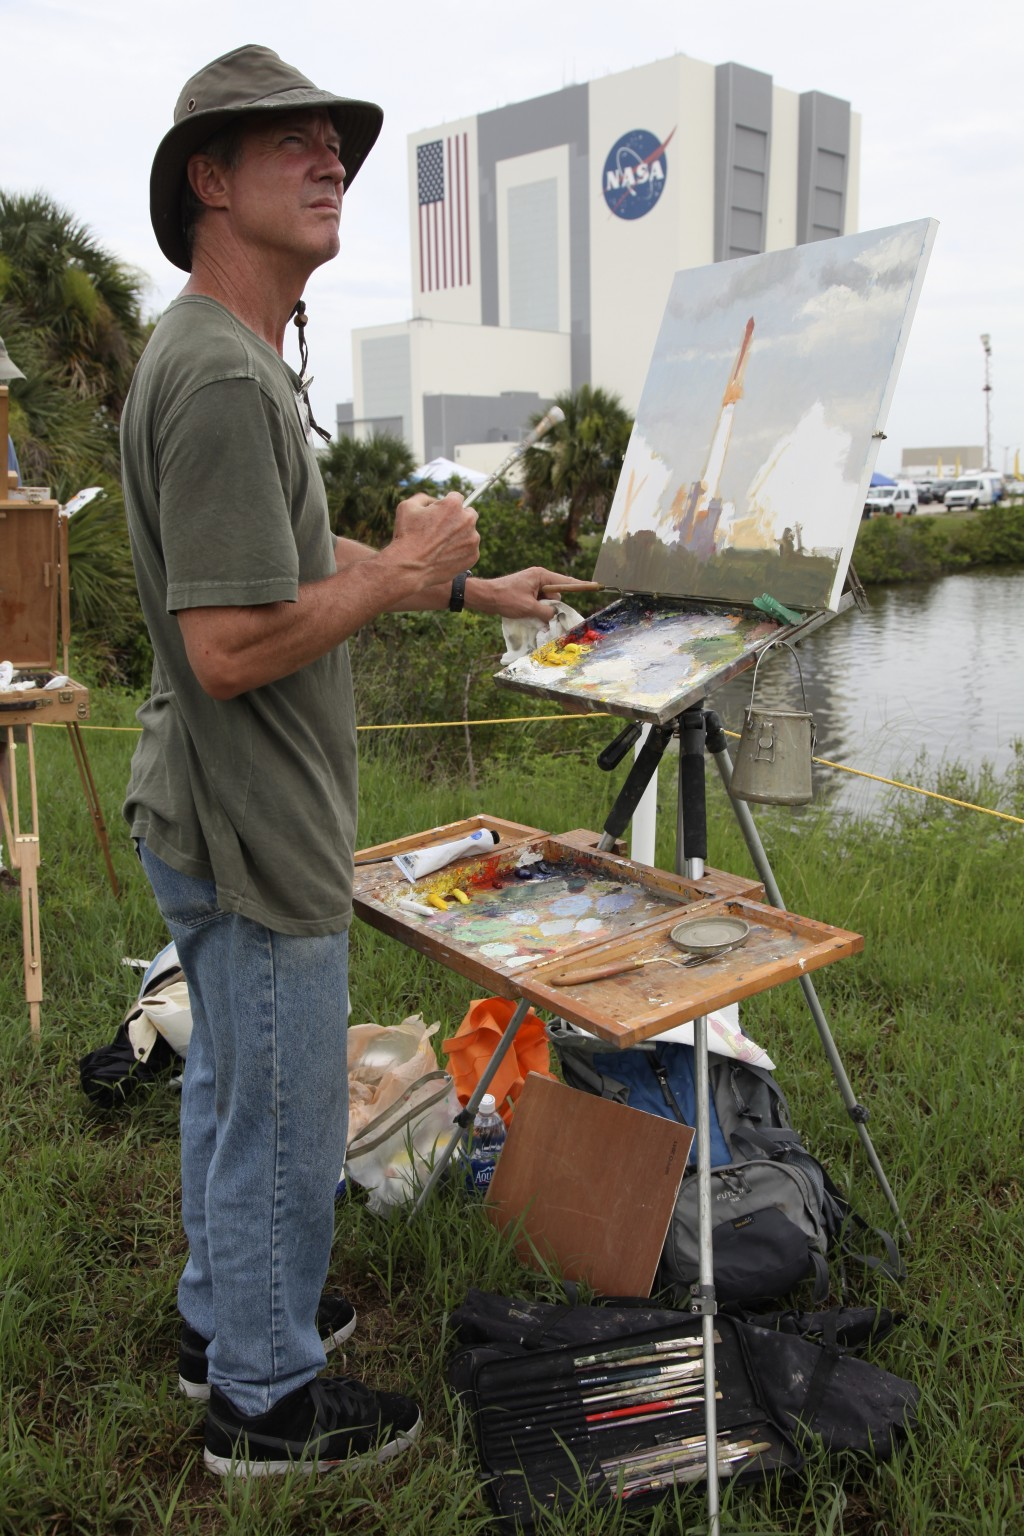 FILE - In this Friday, July 8, 2011 file photo, artist Larry Moore paints the scene at the Kennedy Space Center in Cape Canaveral, Fla., during the la...